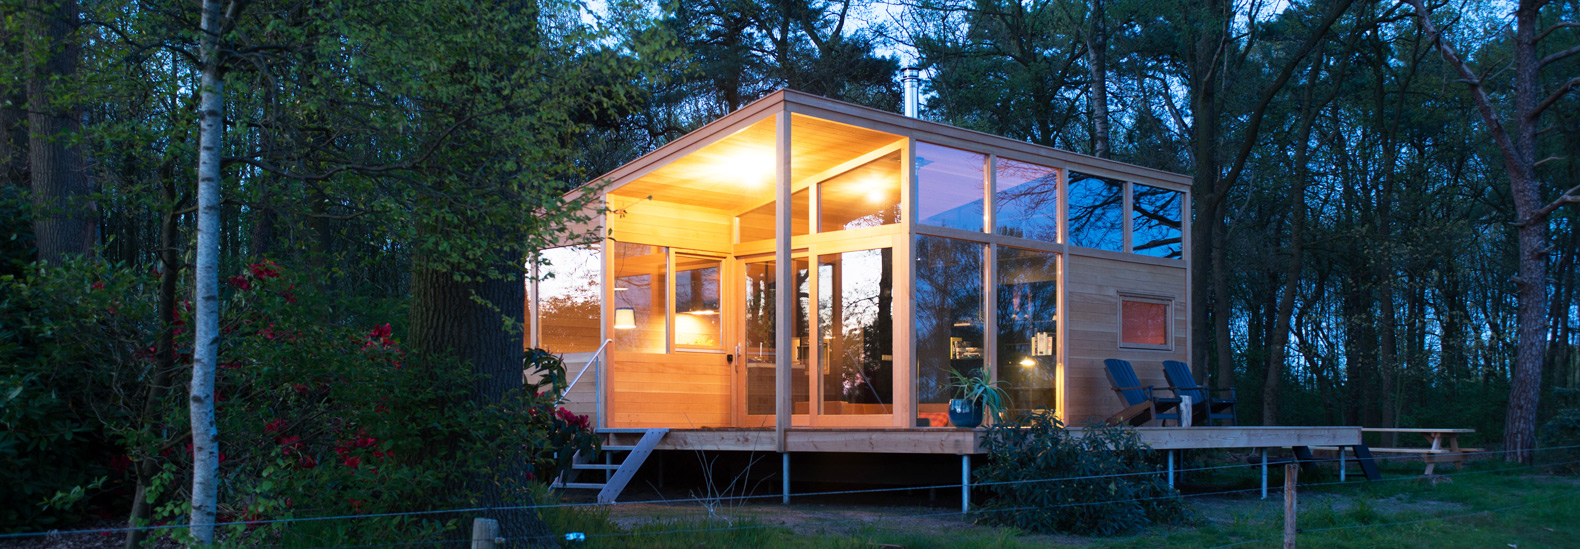 Prefab house-saving and comfort in one bottle 79